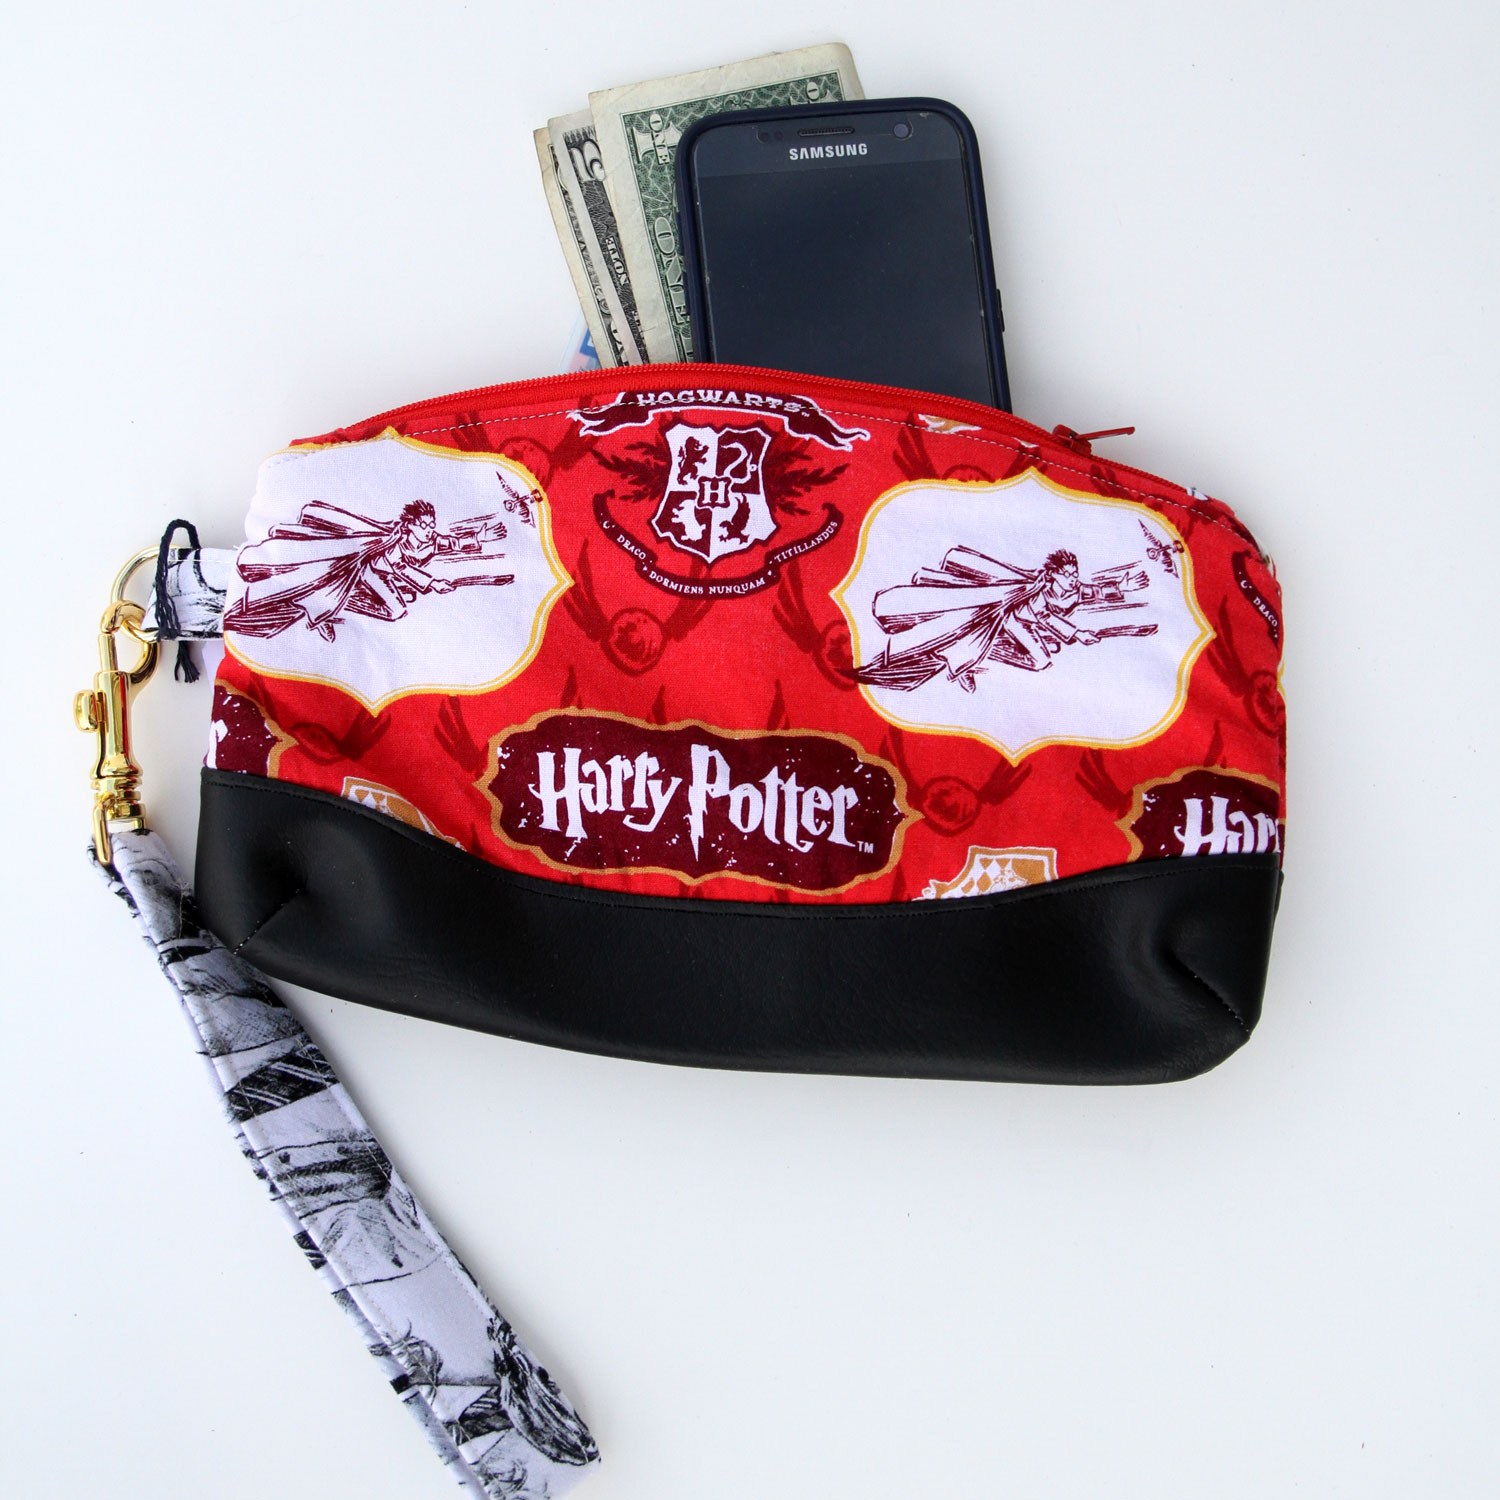 Harry Potter Clutch Purse - A clutch purse is perfect for those short adventures when you only need the essentials.